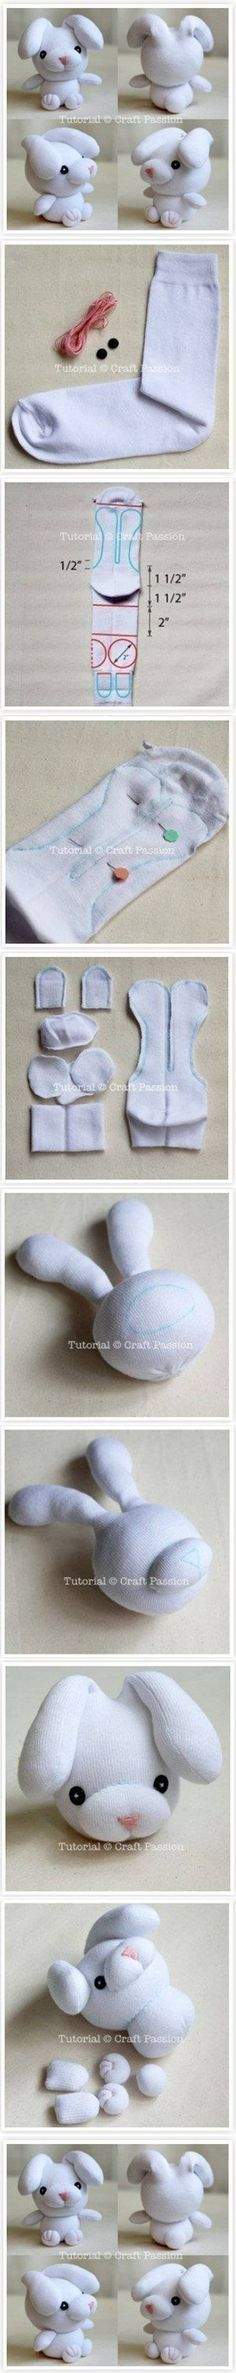 DIY Sew Sock Bunny DIY Projects | UsefulDIY.com